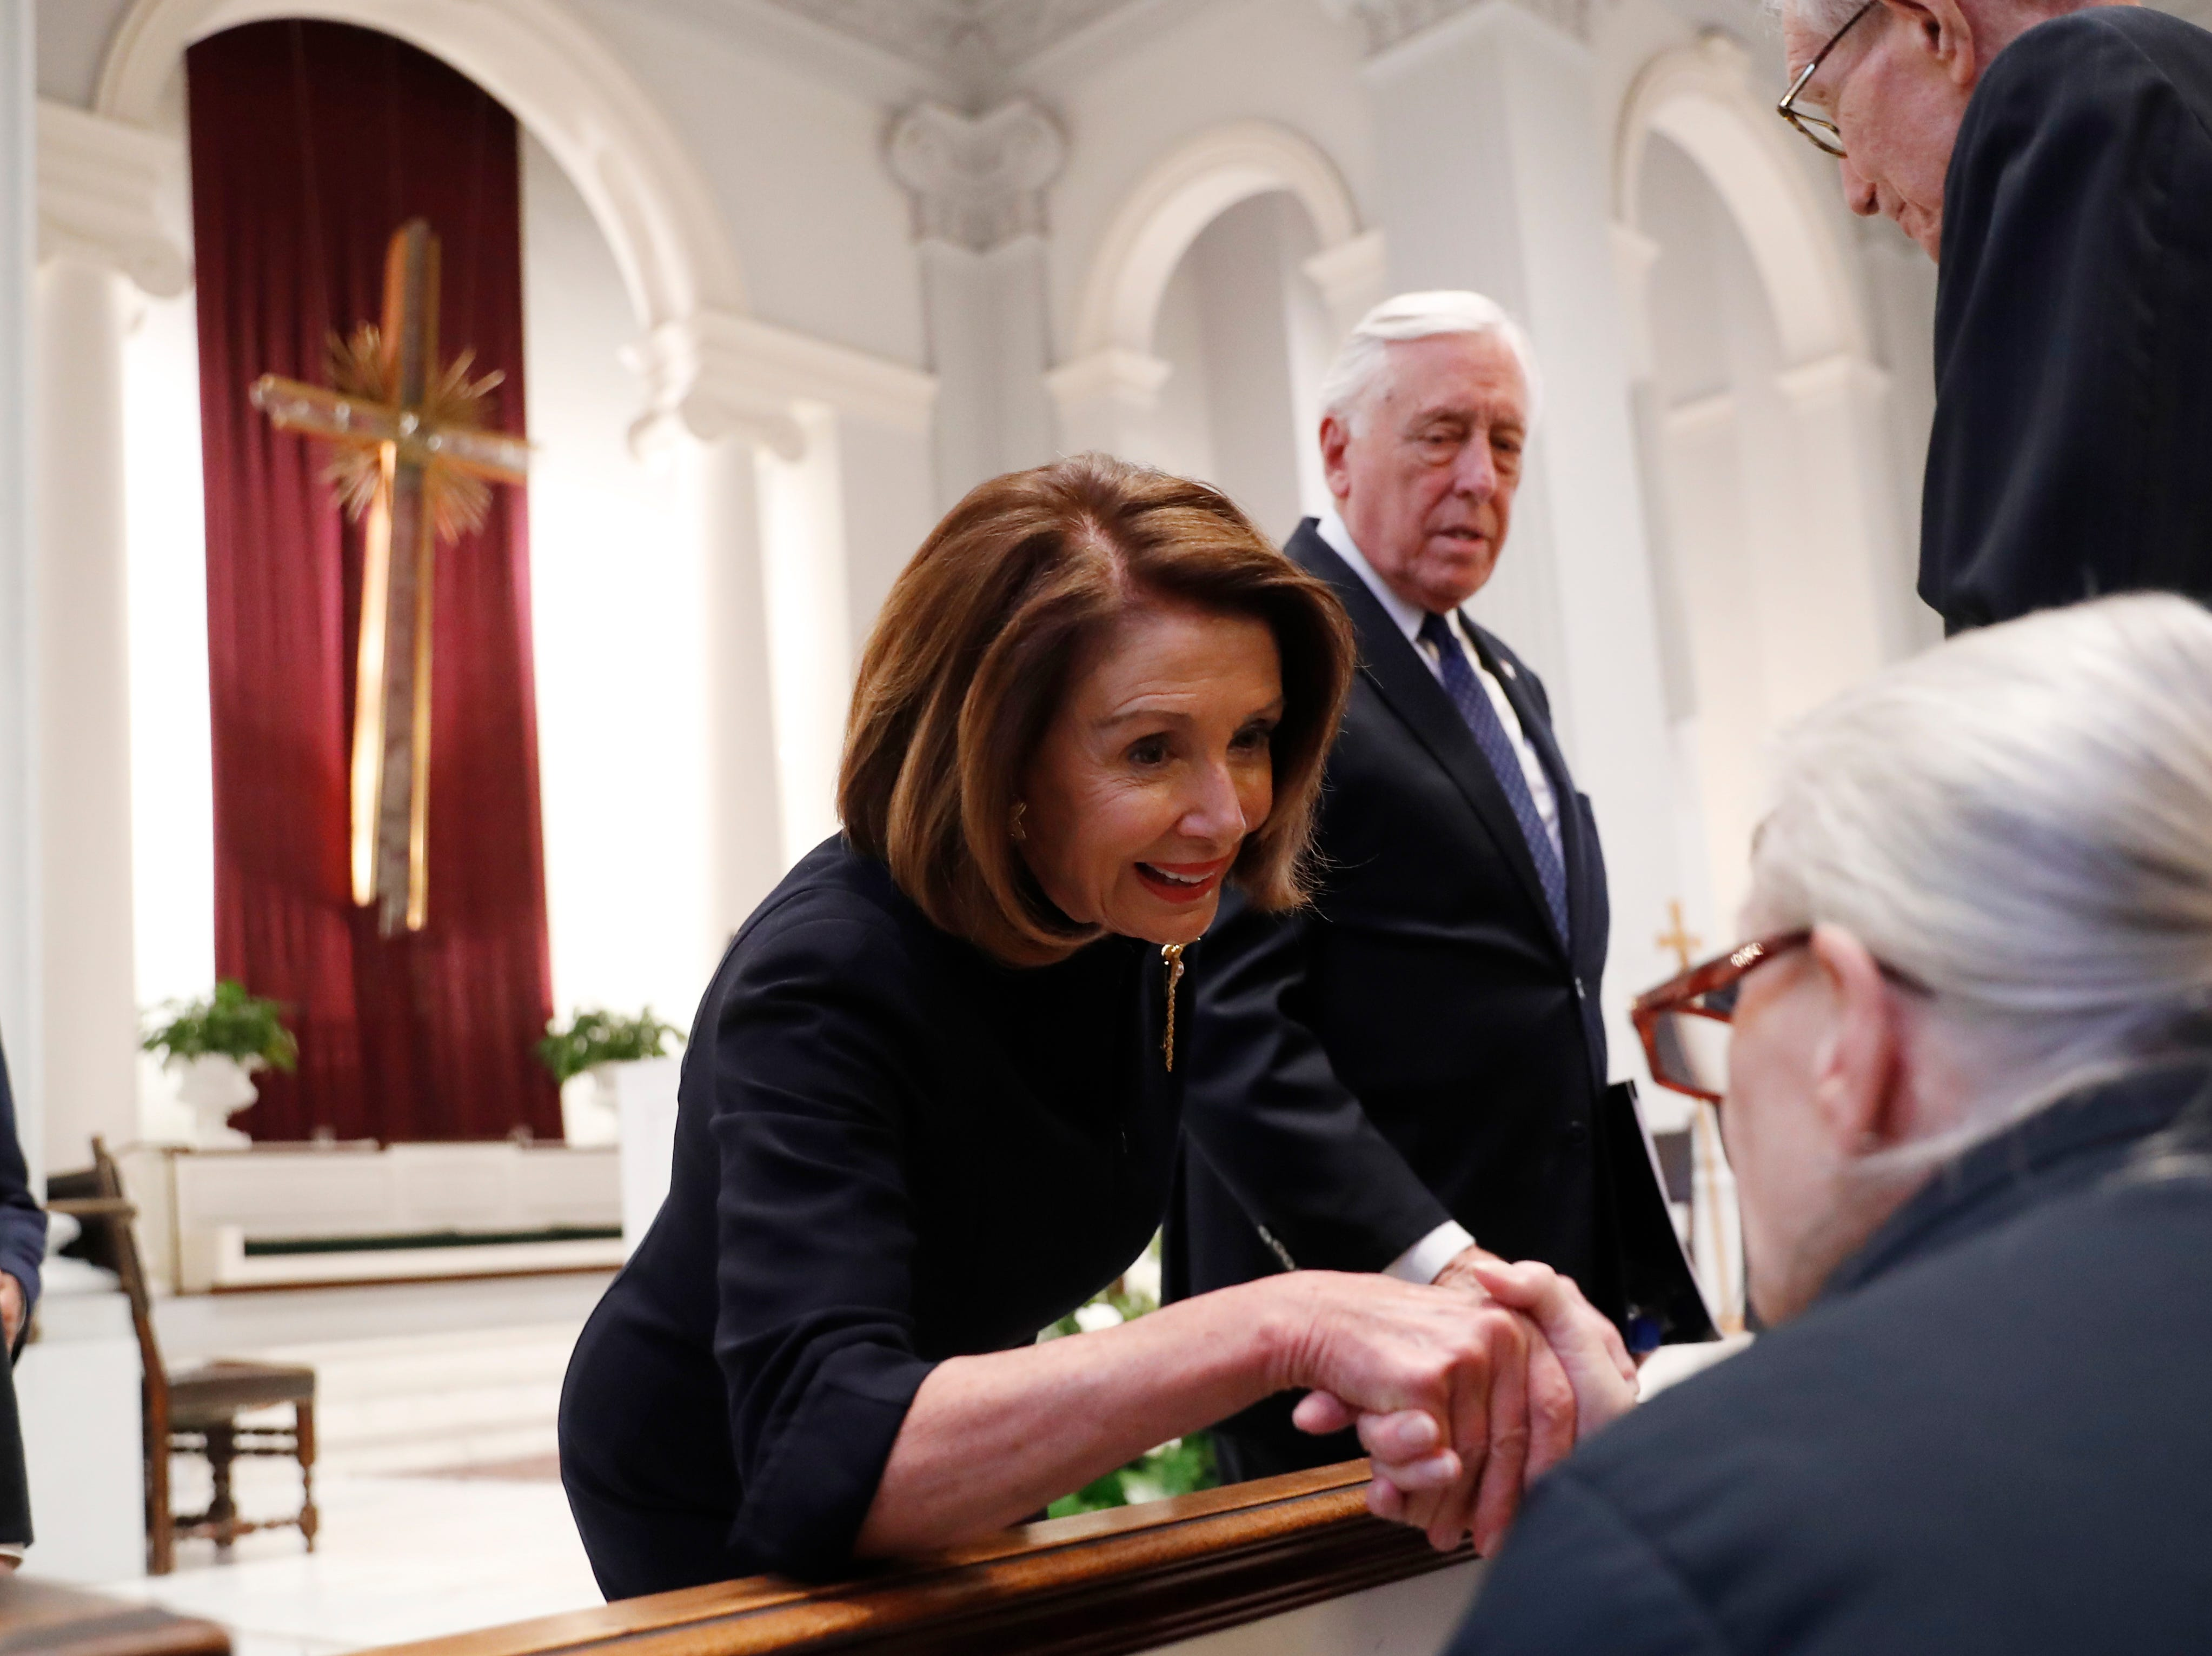 House Speaker Nancy Pelosi and Rep. Steny Hoyer, D-Md., greet family members before a funeral for former Rep. John Dingell, Thursday, Feb. 14, 2019 at Holy Trinity Catholic Church in Washington.